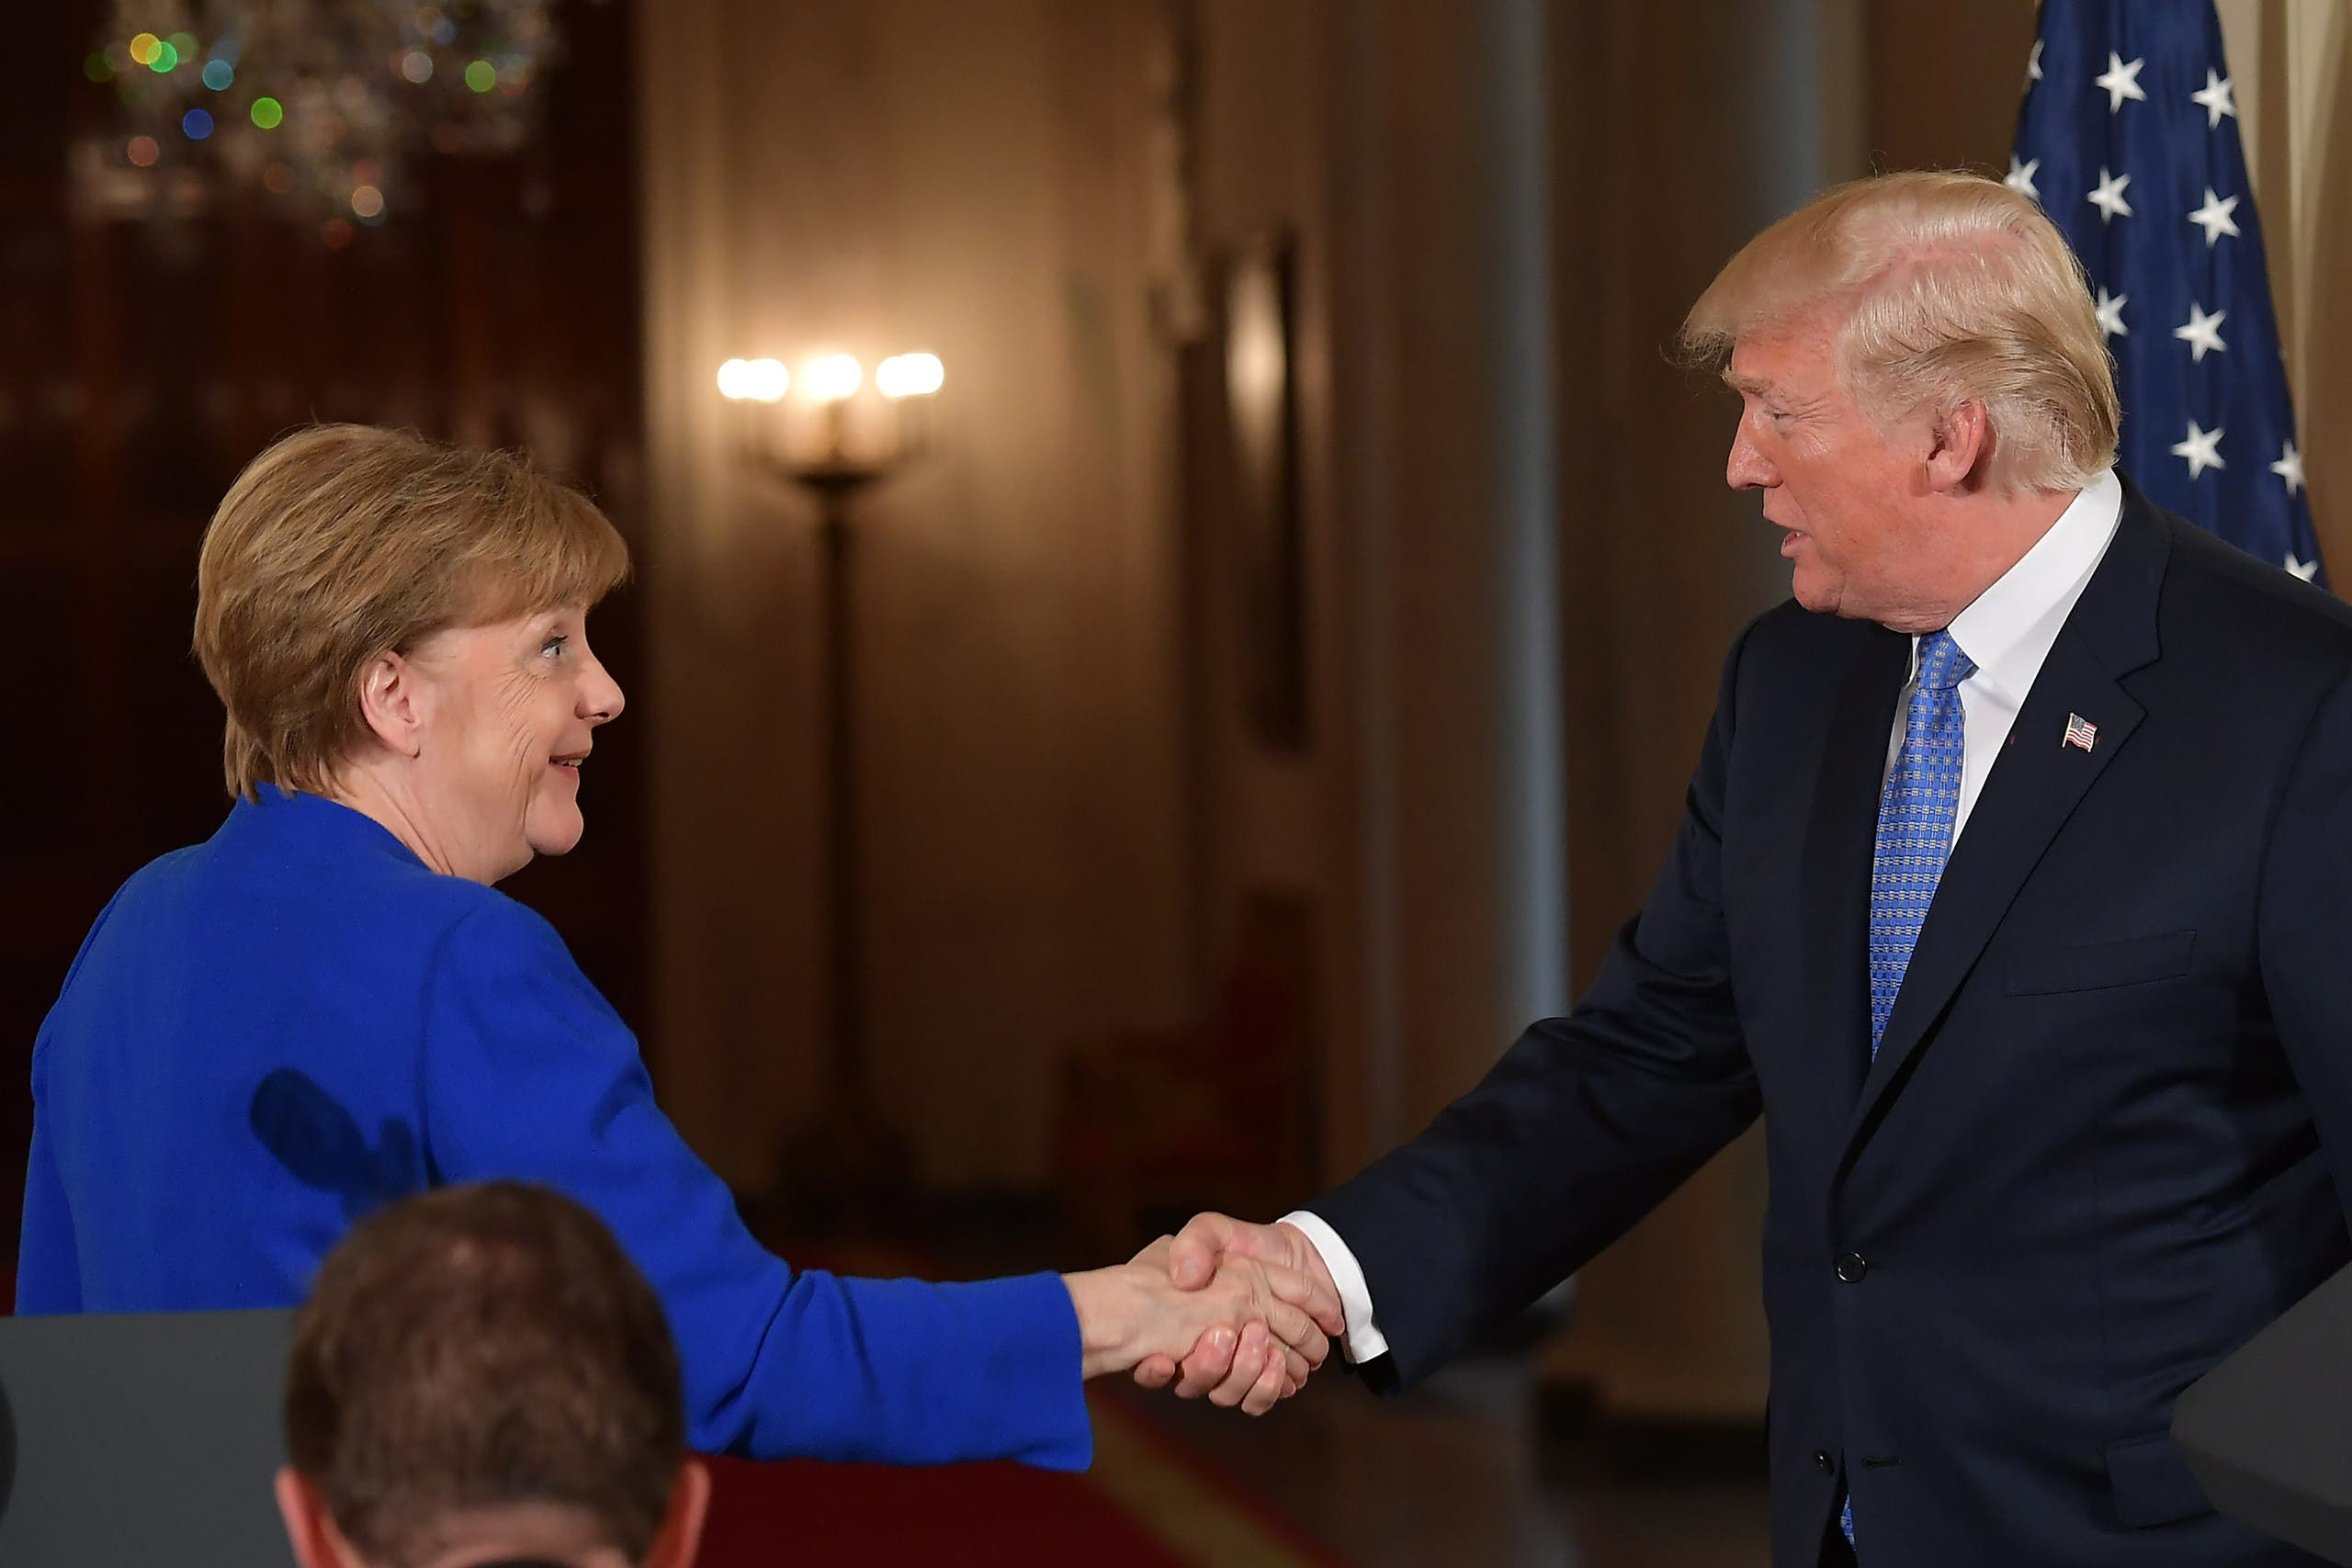 Trump and Merkel after a joint press conference at the White House on April 27, 2018. (AFP)